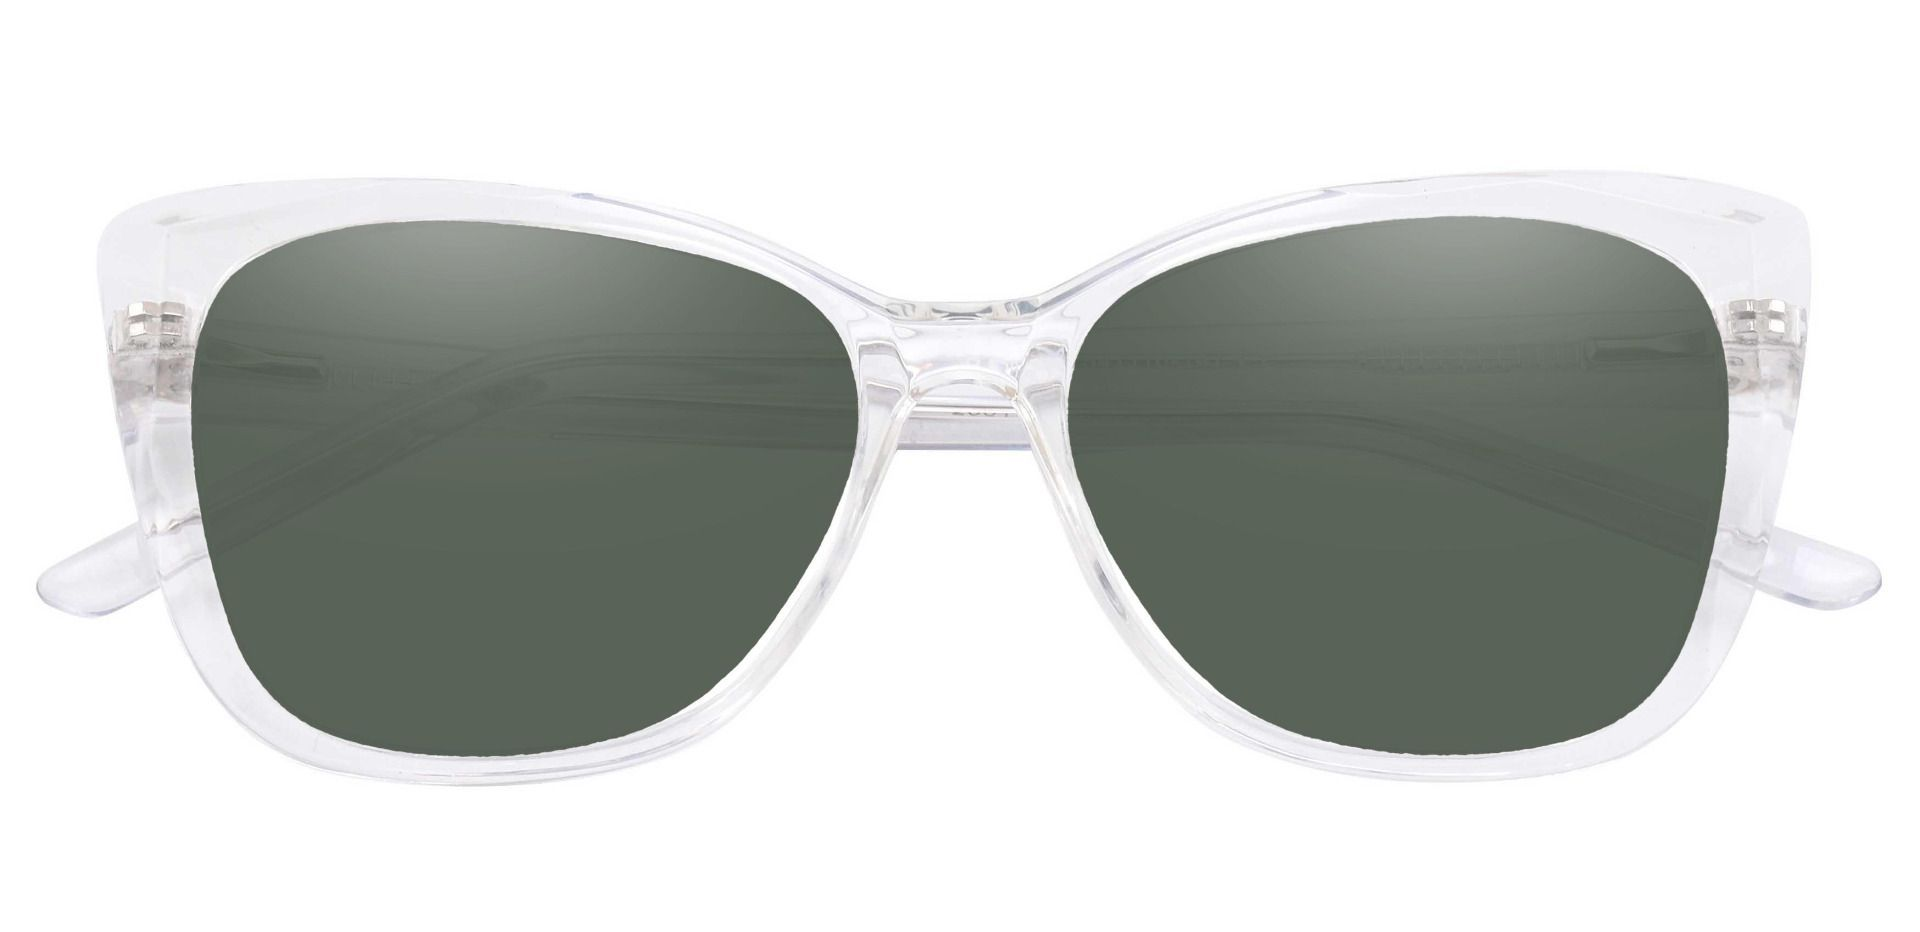 Mabel Square Prescription Sunglasses - Clear Frame With Green Lenses